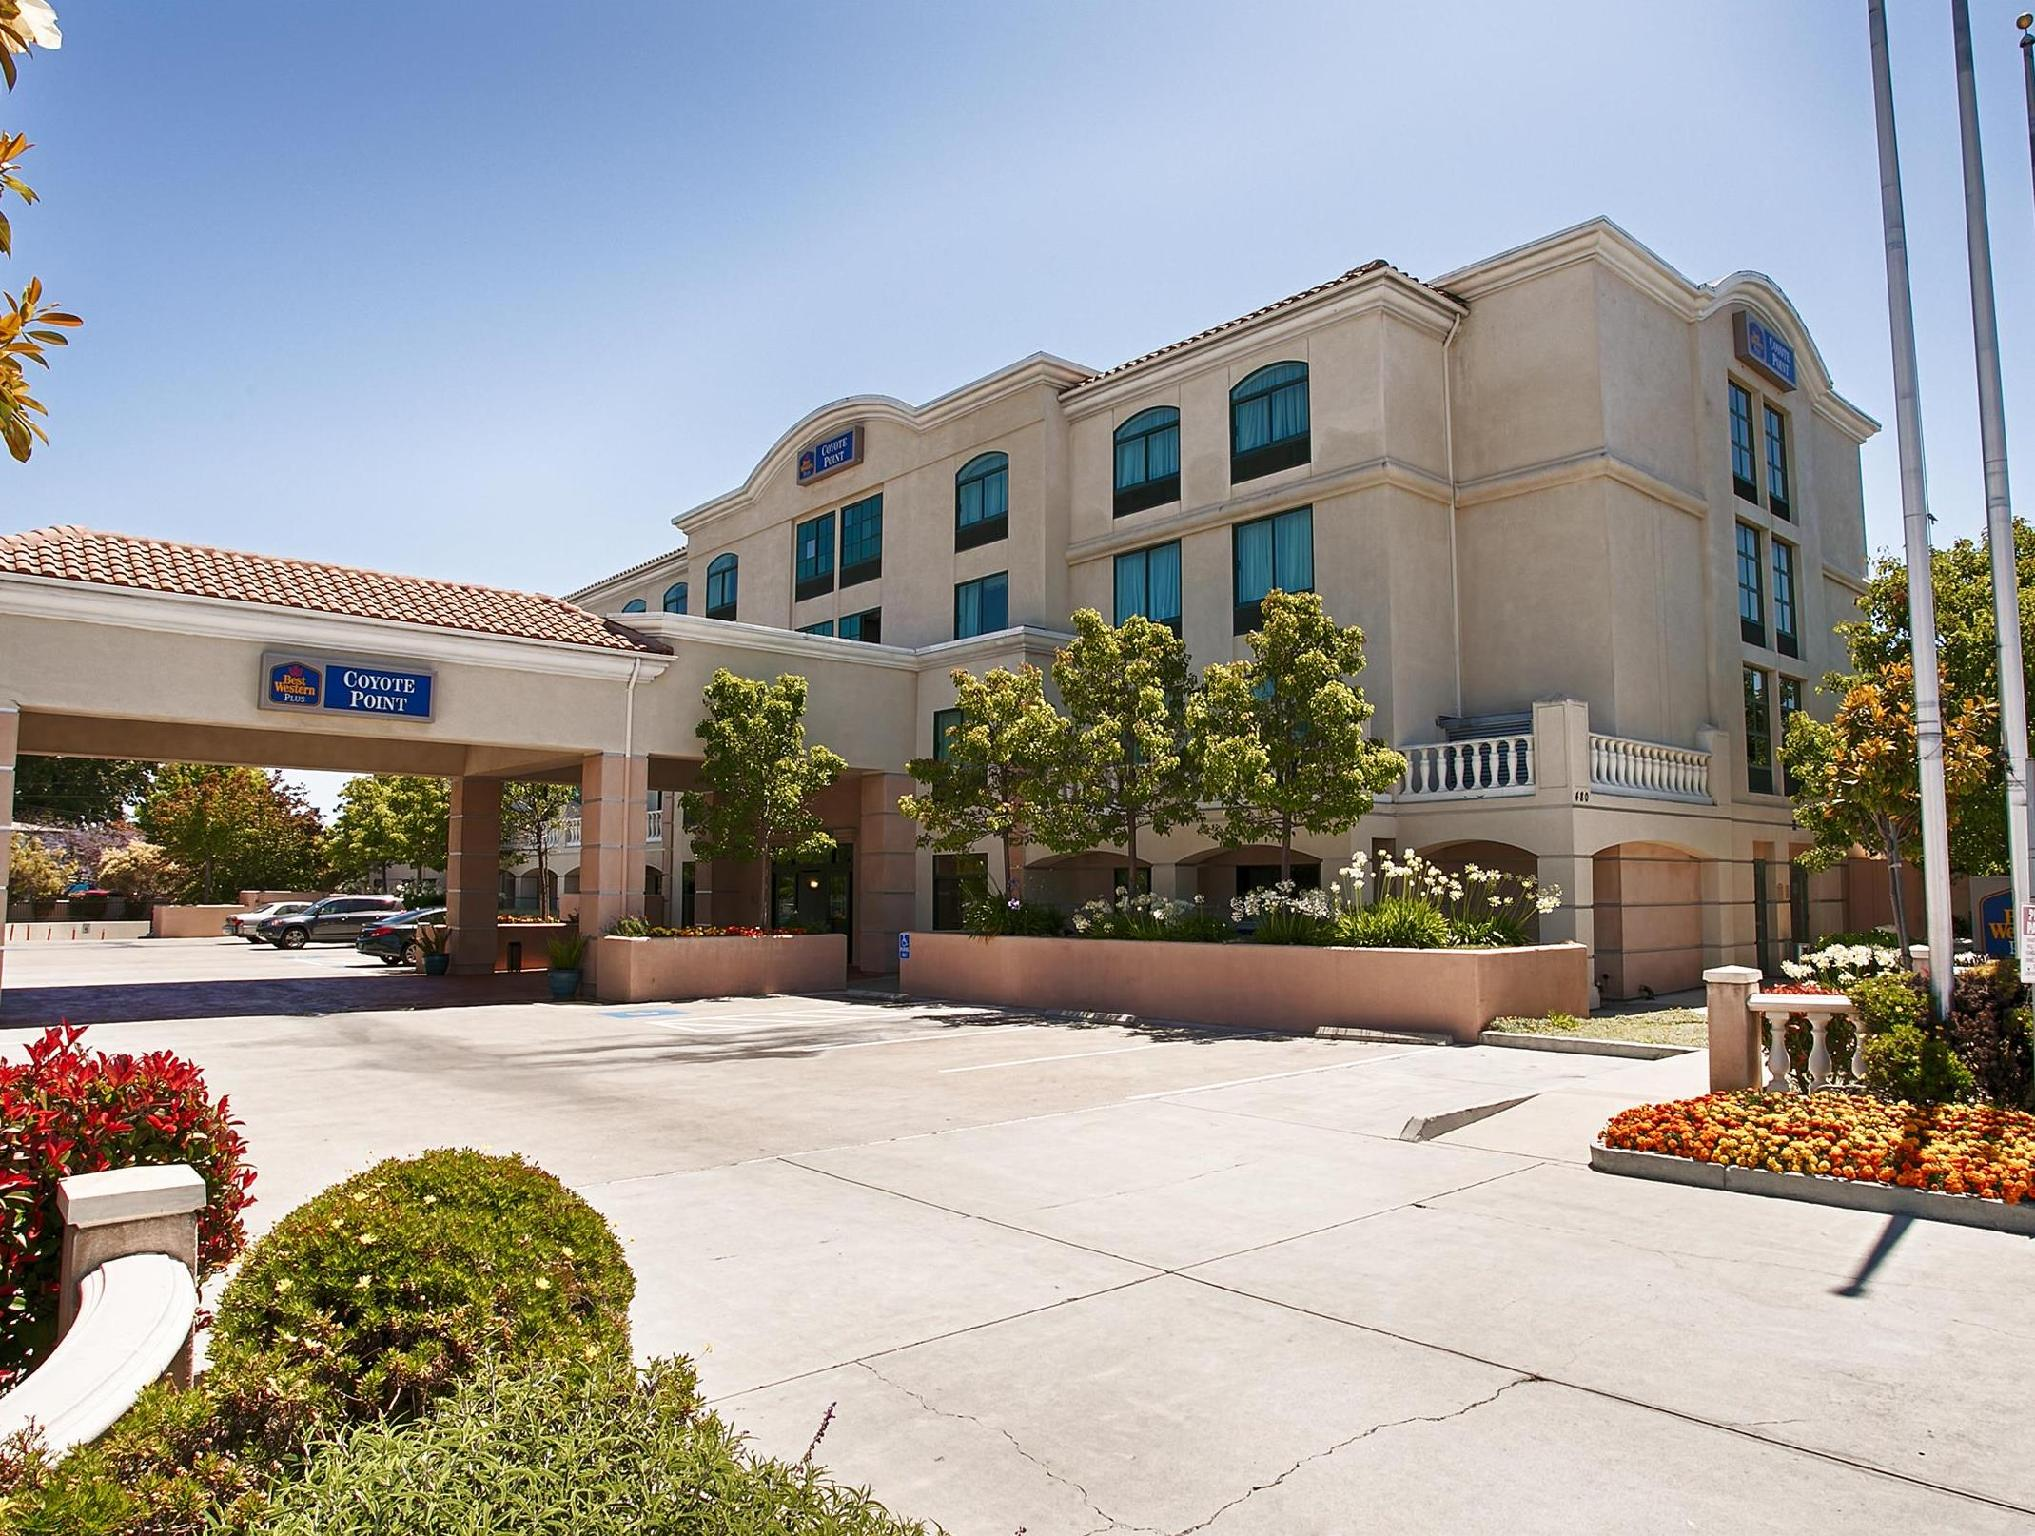 Best Western Coyote Point, San Mateo